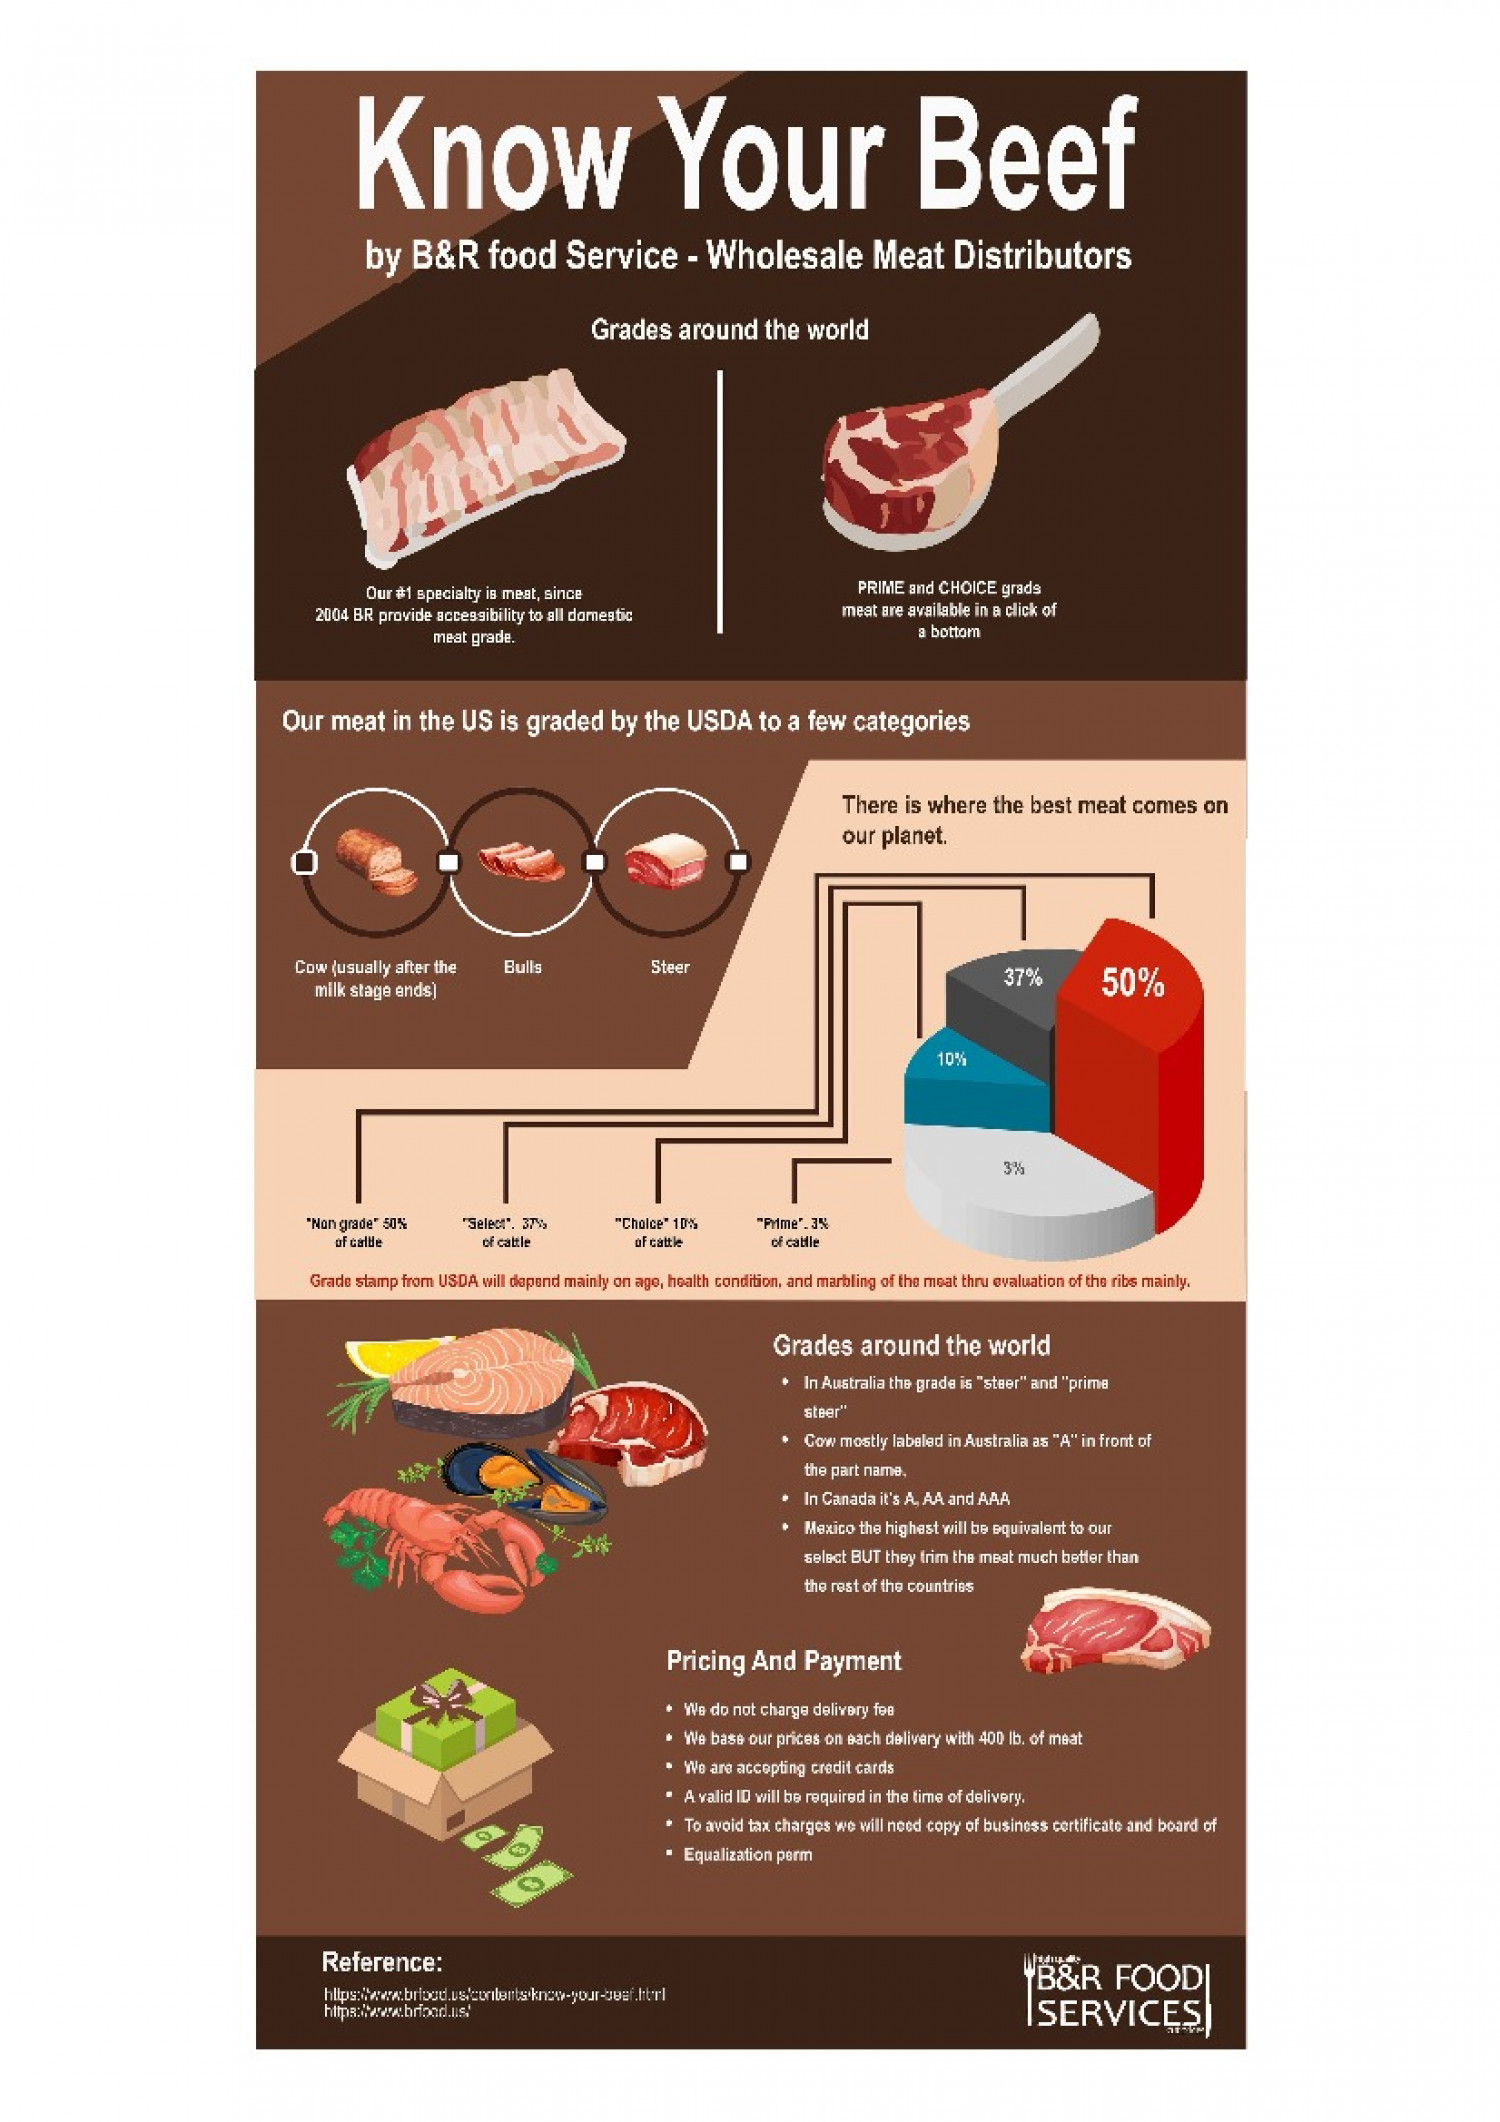 Know Your Beef by B&R food Service - Wholesale Meat Distributors Infographic